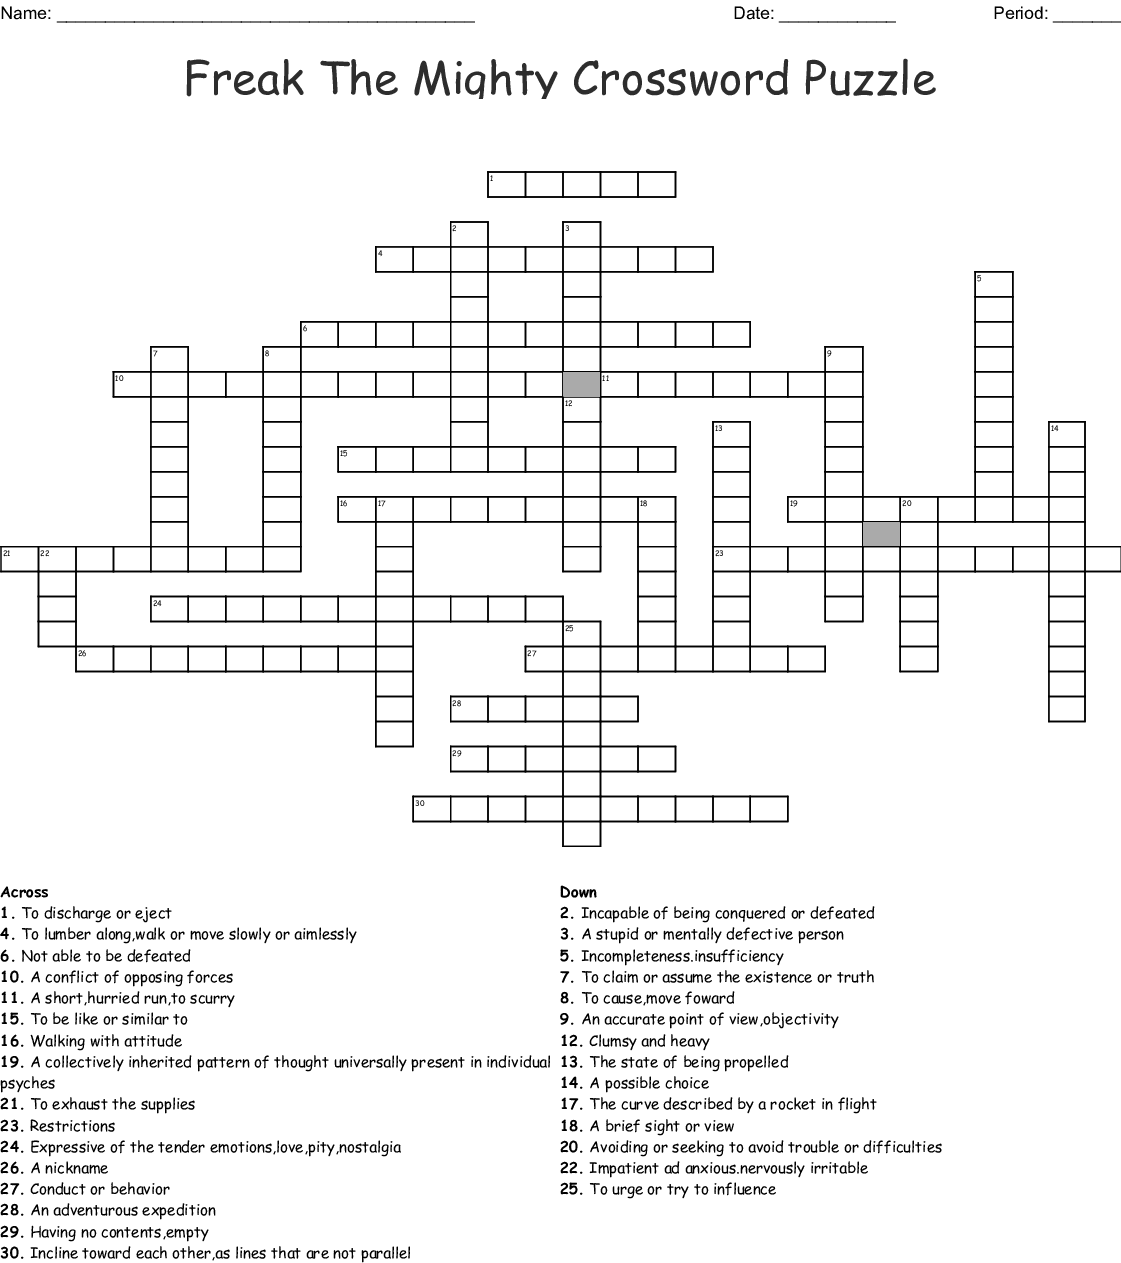 Freak The Mighty Crossword Puzzle Crossword Wordmint